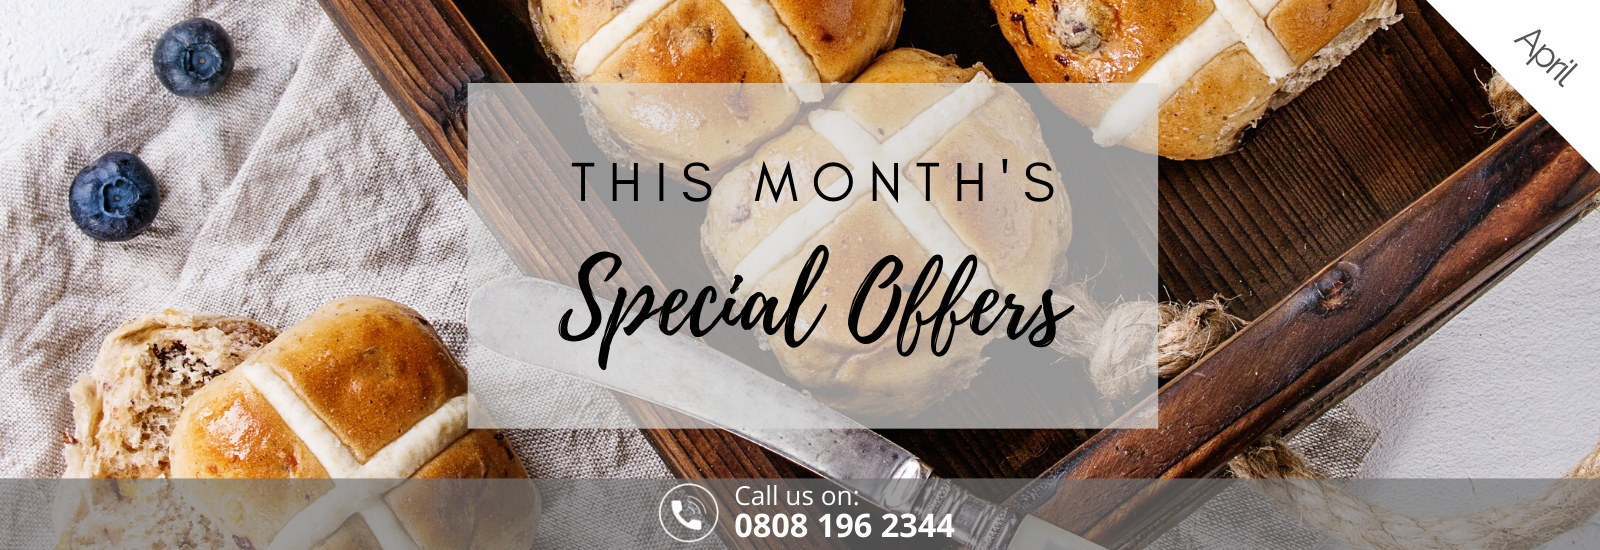 BAKO - This month's special offers